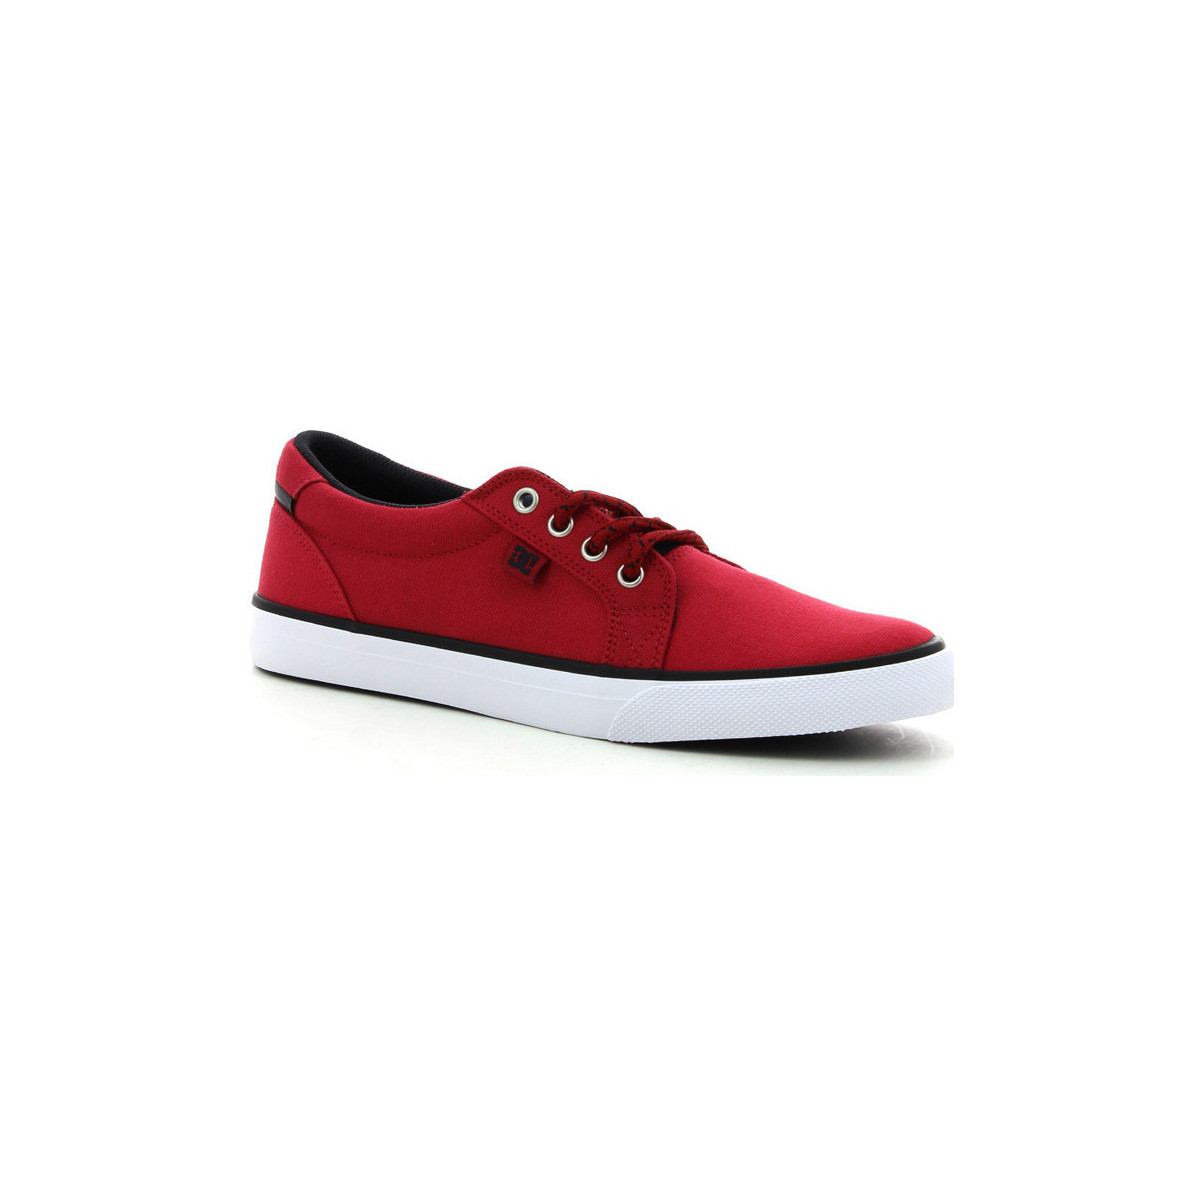 DC Shoes Council TX Rot - Schuhe Sneaker Low Herren 22,50 €